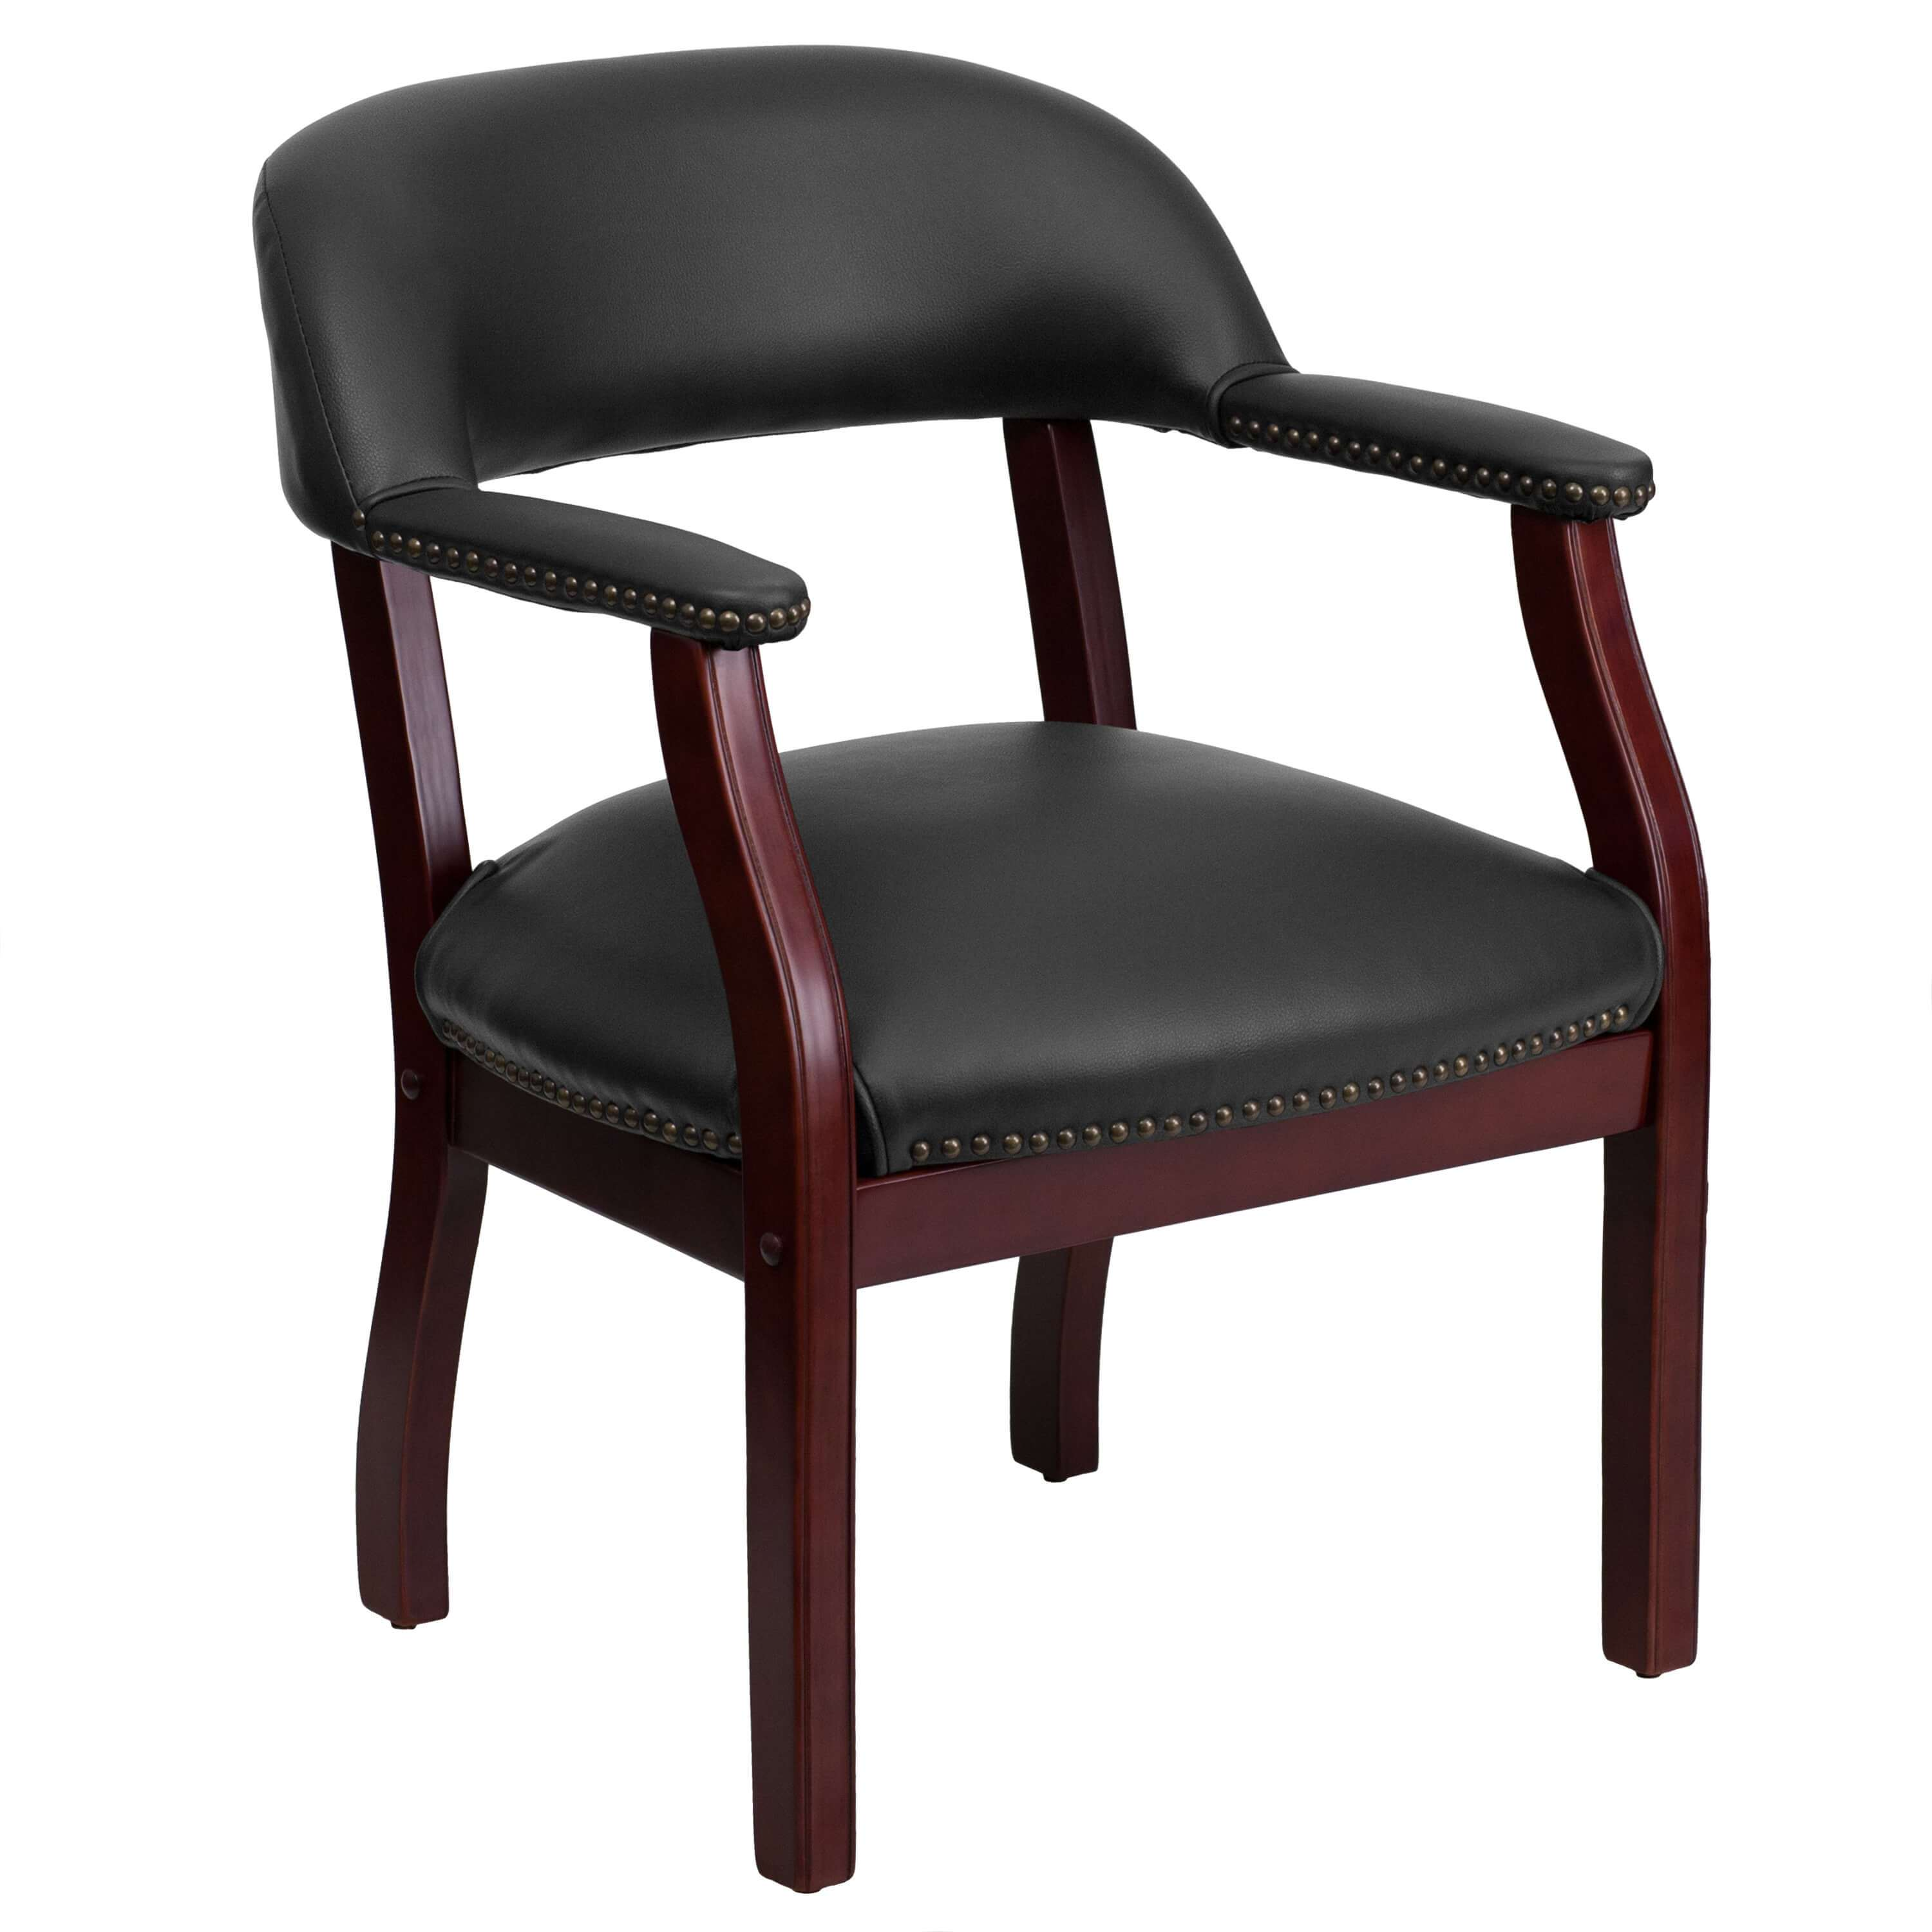 Side chairs with arms CUB B Z105 BLACK GG FLA